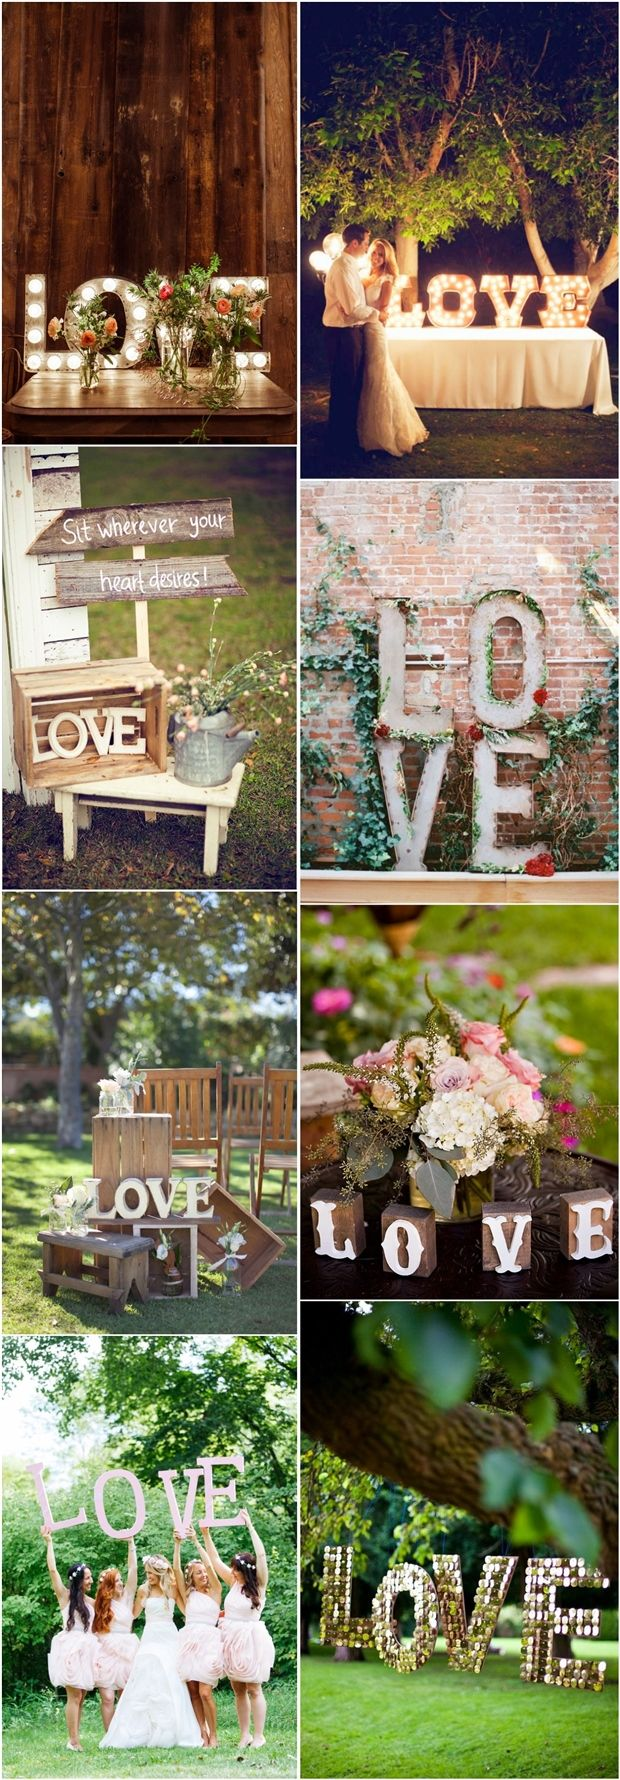 rustic vintage wedding decor ideas- love letter wedding theme ideas